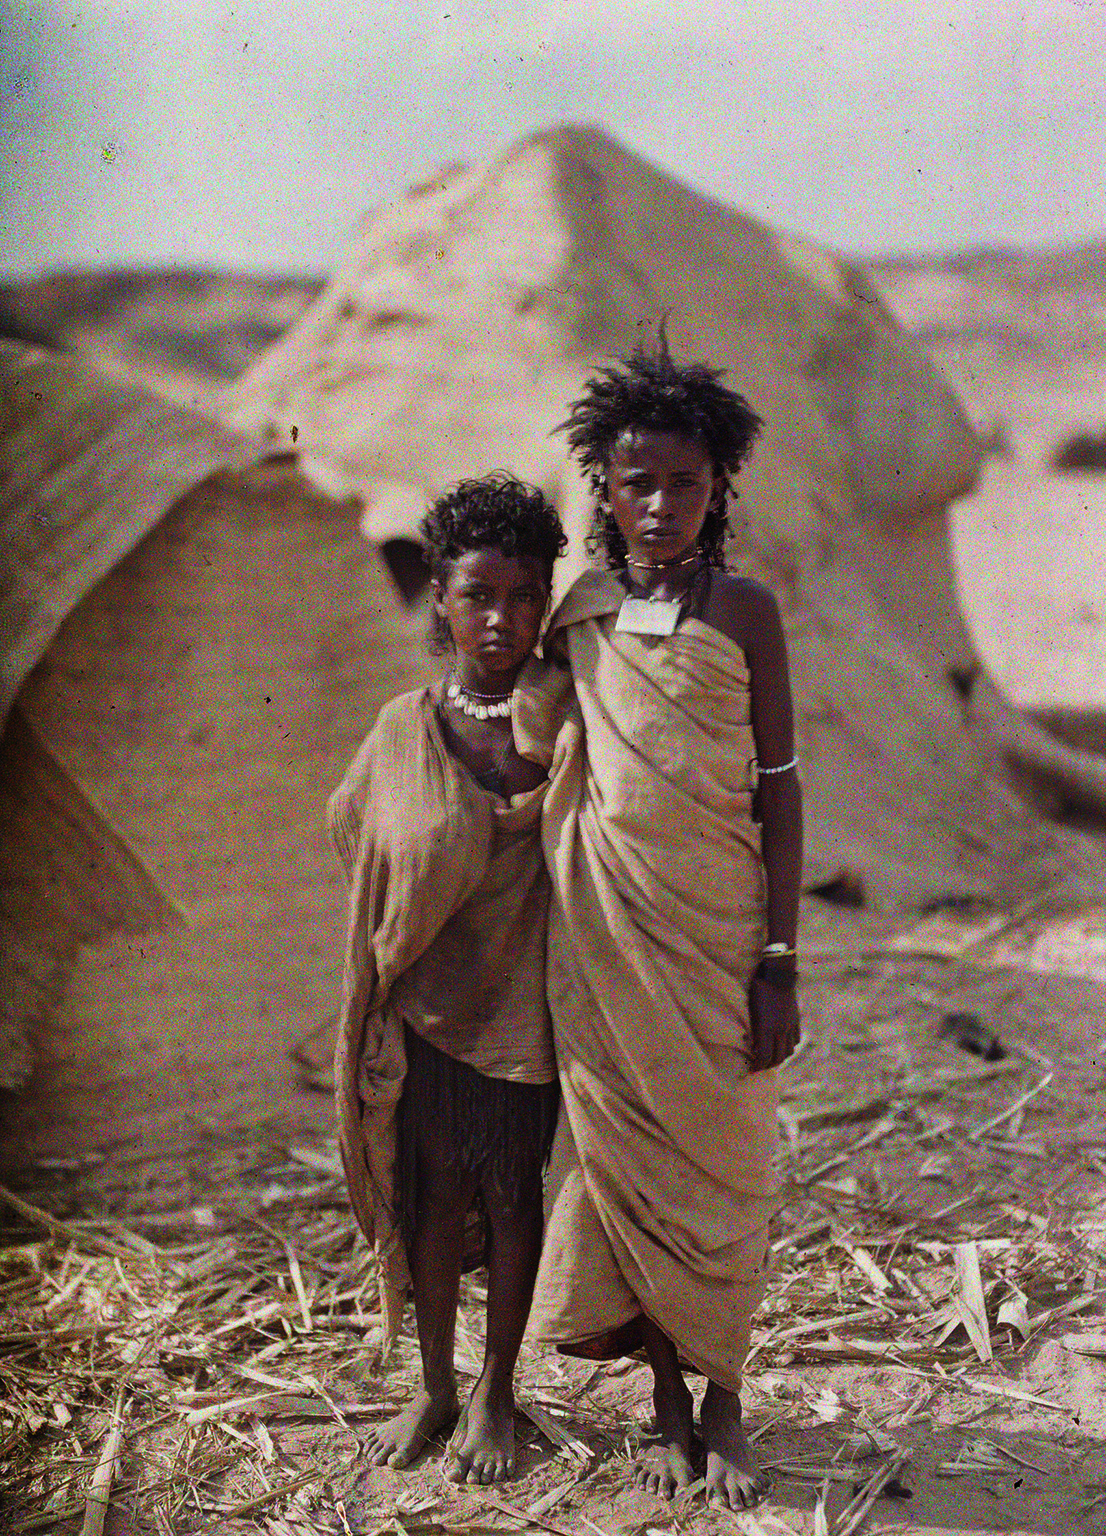 Albert Kahn, Les Archives de la Planète, Auguste Léon. Egypt, Assuan, two young Bishari- (Nubier-) women in front of their dwelling. January 1914. © Musée Albert-Kahn, Département des Hauts-de-Seine.